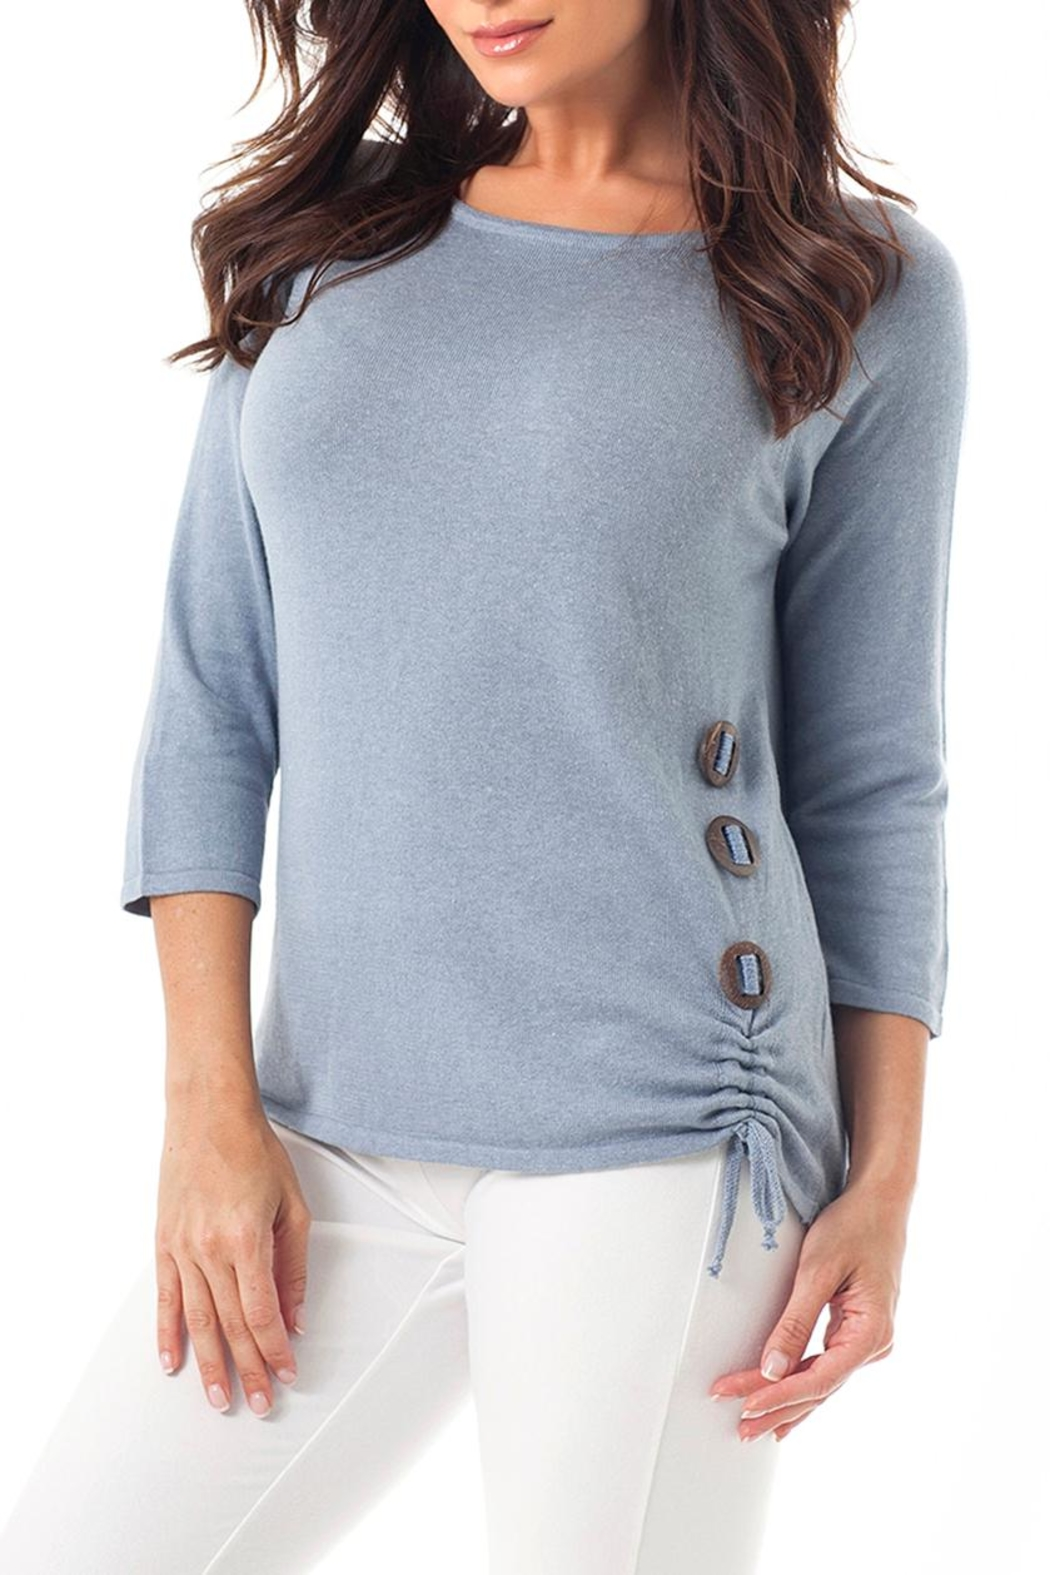 Angel Apparel Gathered Button Top - Main Image